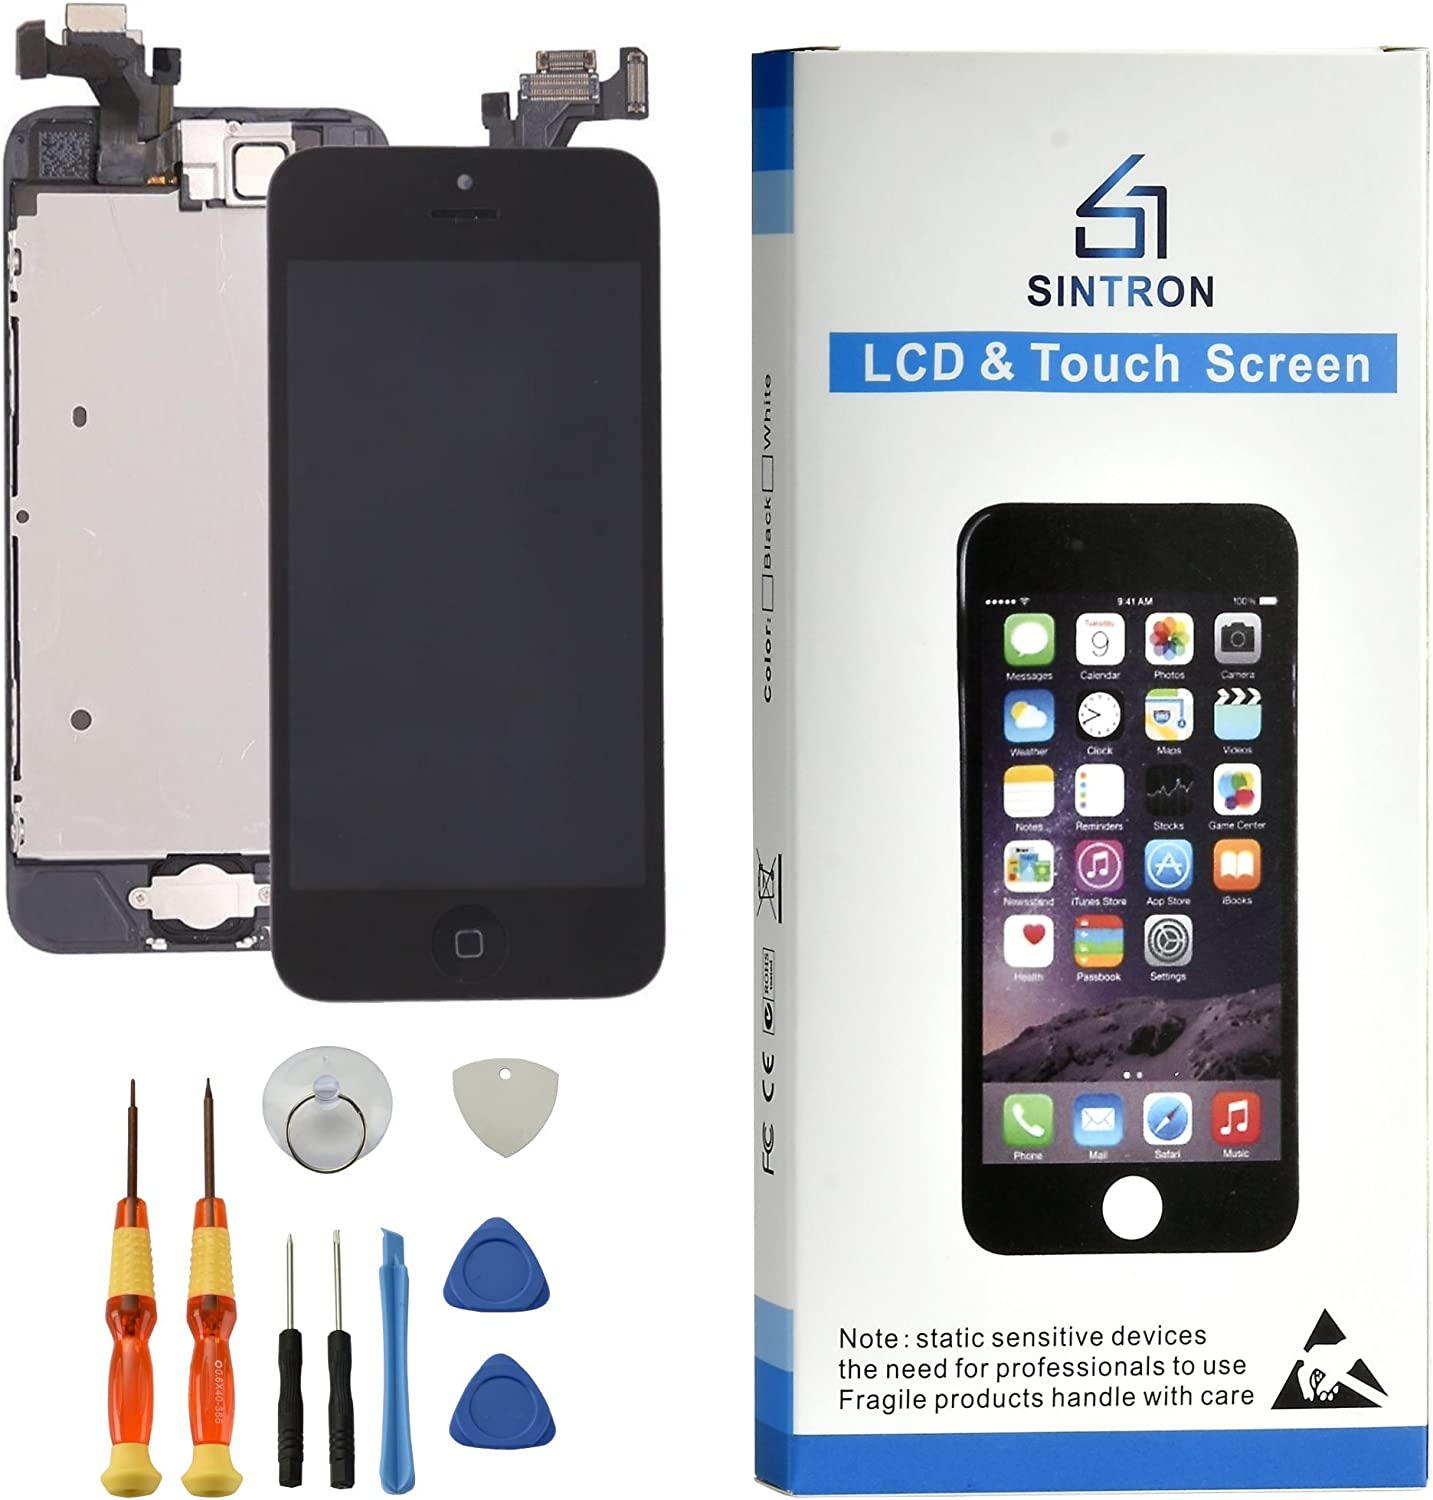 Sintron OEM LCD Screen Replacement - for iPhone 7 Plus Black Fully Assembled Including Original Parts Front Camera, Proximity Sensor, Earpiece, LCD Shield + Tools & Guide